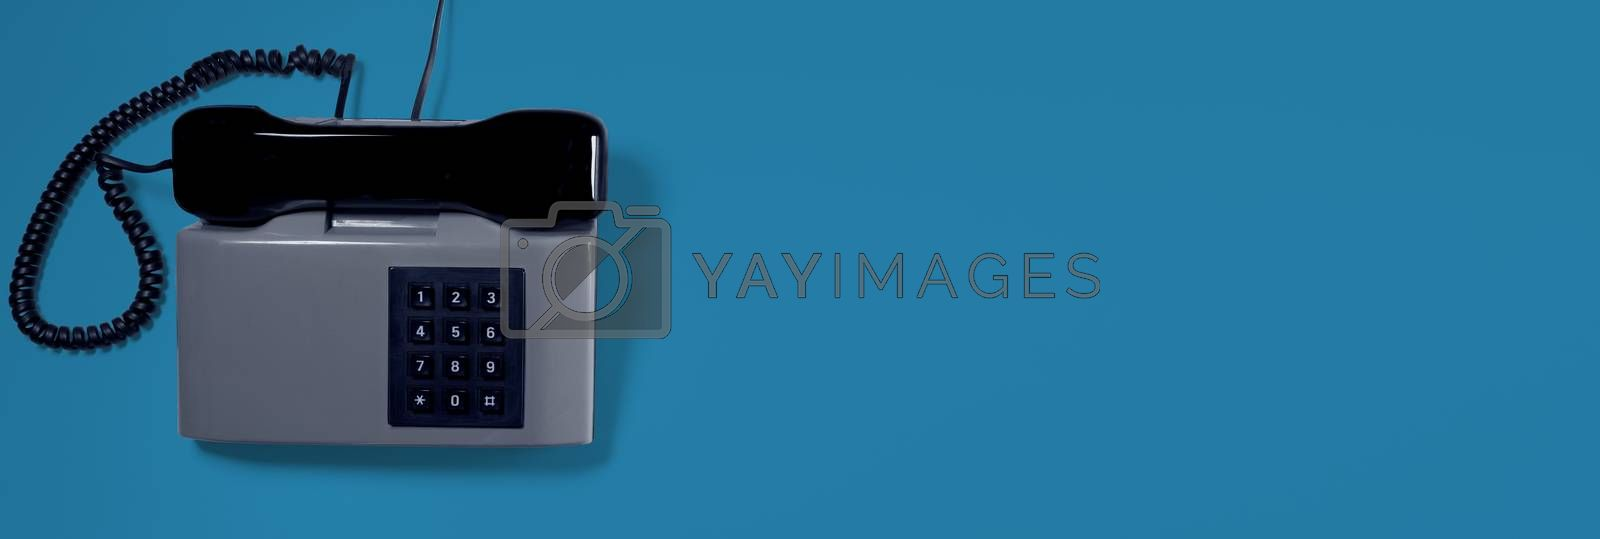 A grey vintage telephone with blue background. Business card.